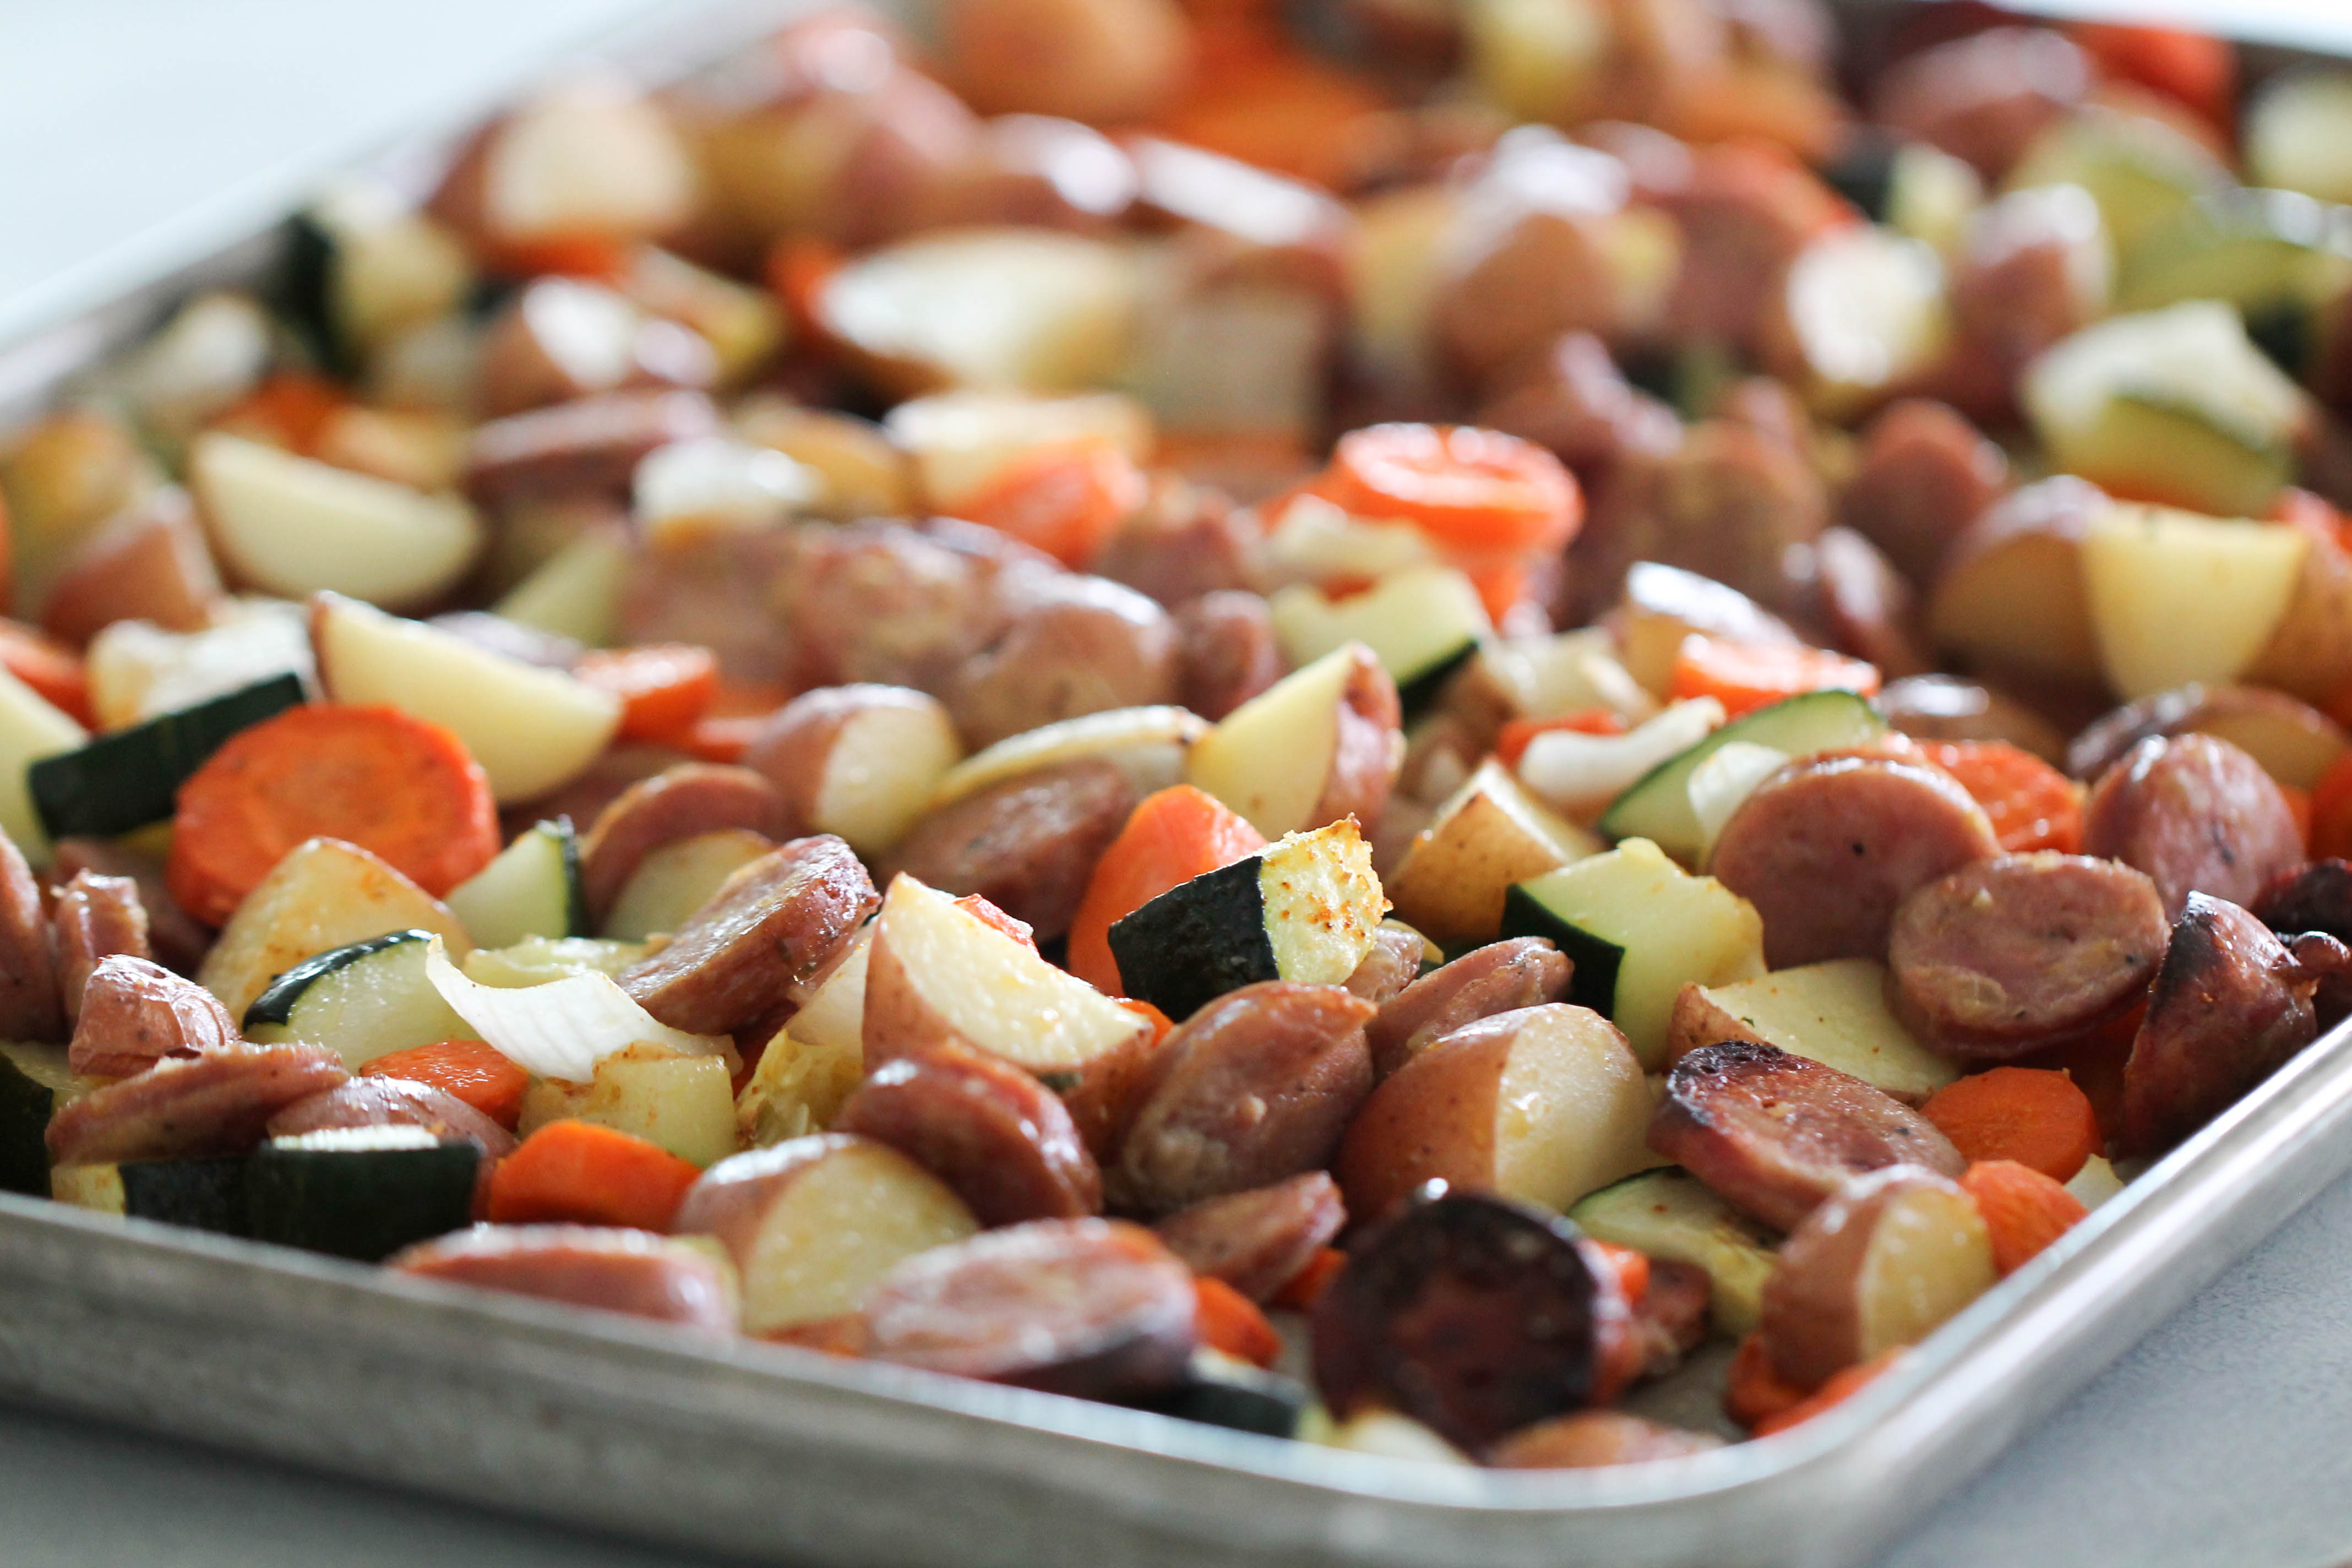 Full view of sausage and vegetables cooked in pan.